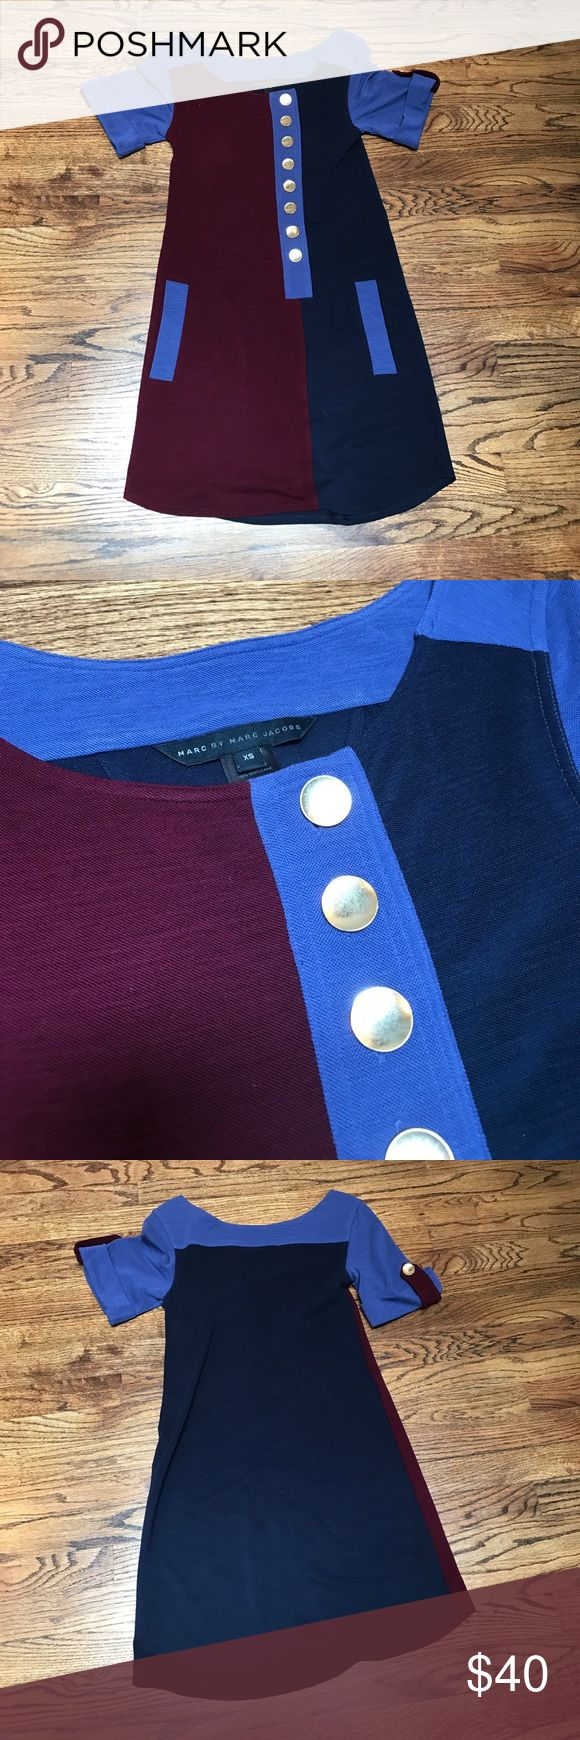 Marc by Marc Jacobs dress Navy, blue and oxblood dress with gold buttons. Buttons down the front and on sleeve detail. 100% wool/ laine Marc By Marc Jacobs Dresses